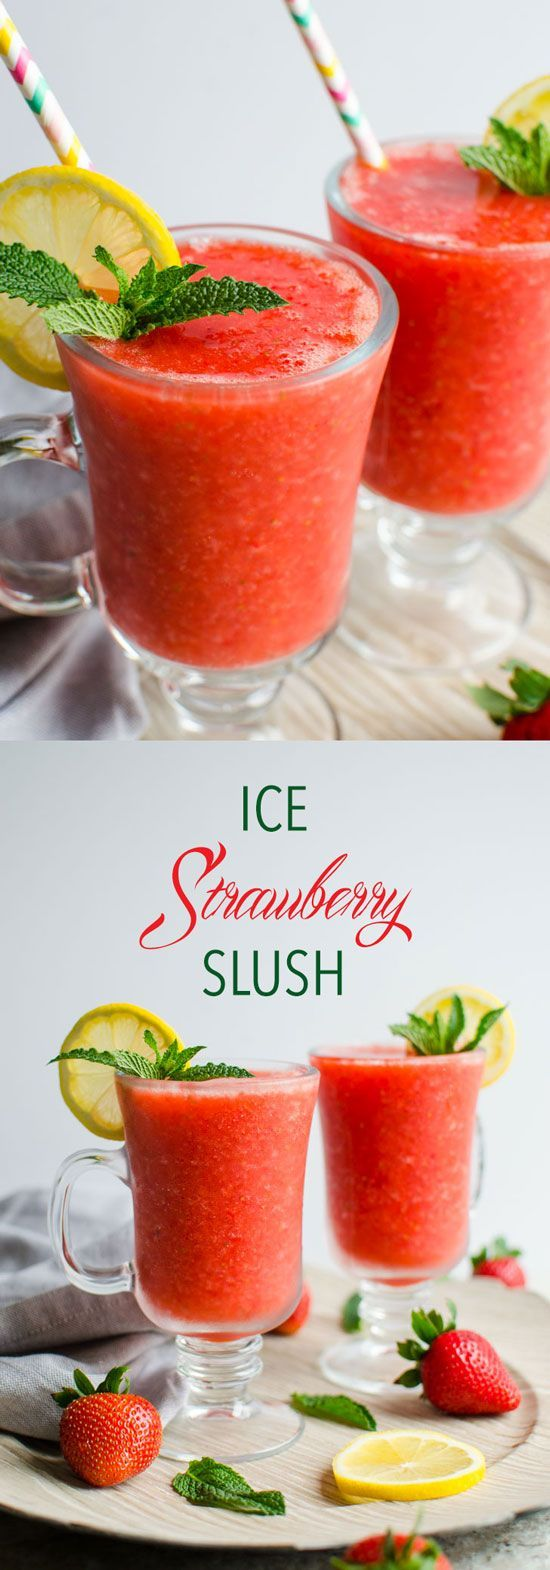 4 ingredients, 5 min preparation, 100 calories and naturally sweetened strawberry slush perfect to enjoy the warm weather